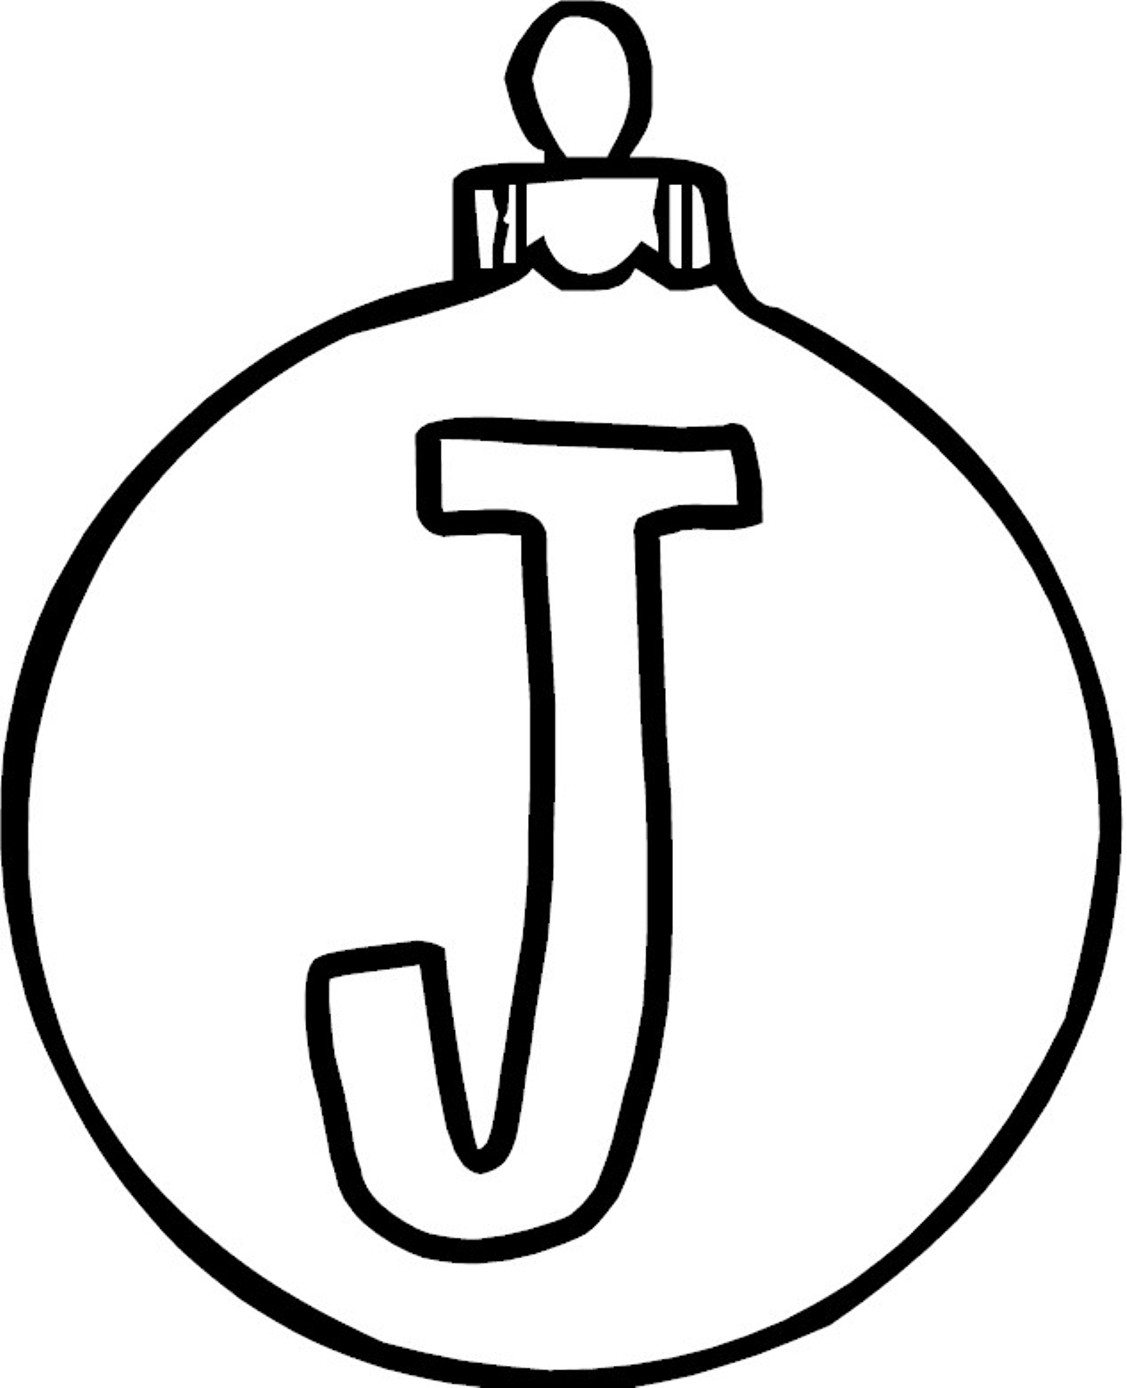 1127x1388 Ornament J Alphabet Coloring Page Alphabet Coloring Pages